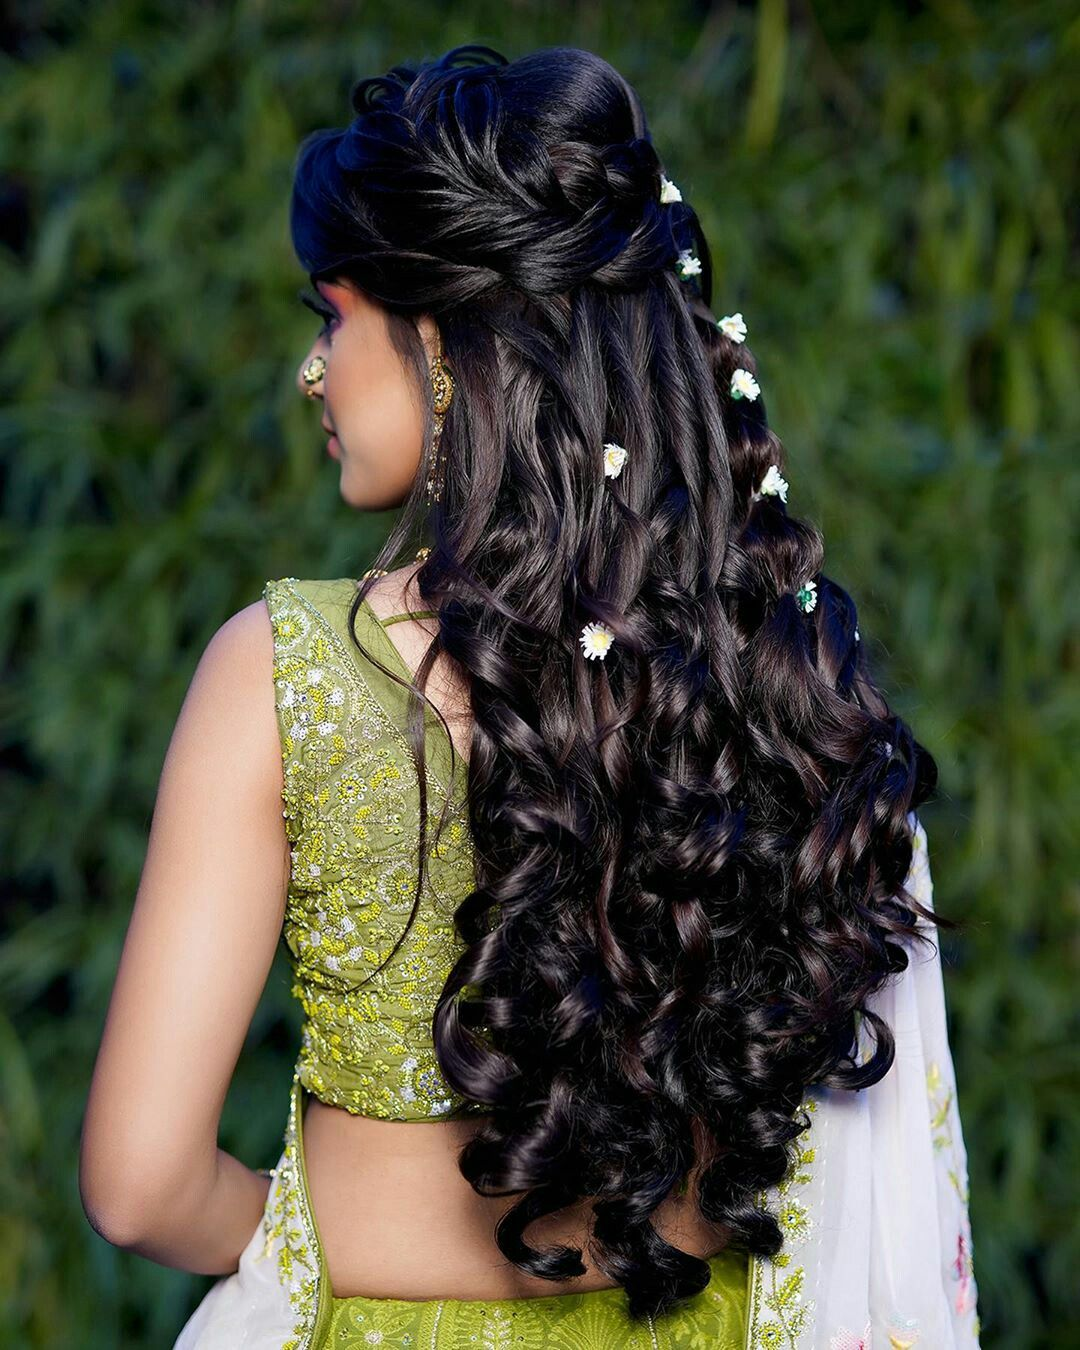 Best Hairstyle For A Wedding, Mehndi And Haldi With Floral   Easy, beautiful hairstyles ...